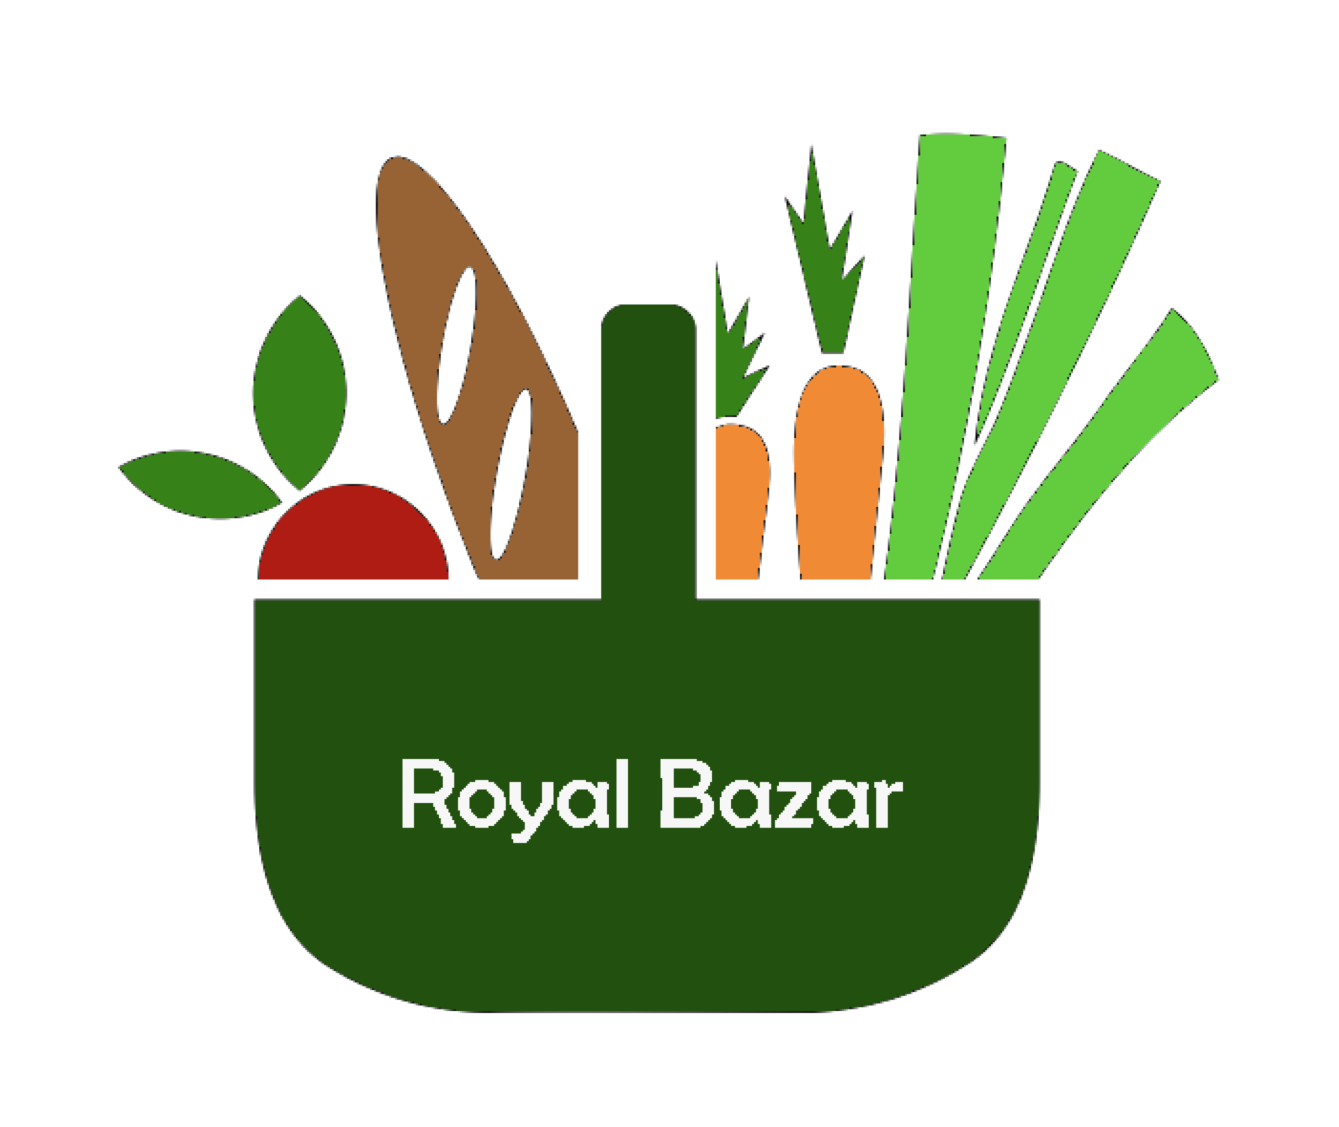 Royal Bazar online marketplace in Dubai acquired by a regional conglomerate